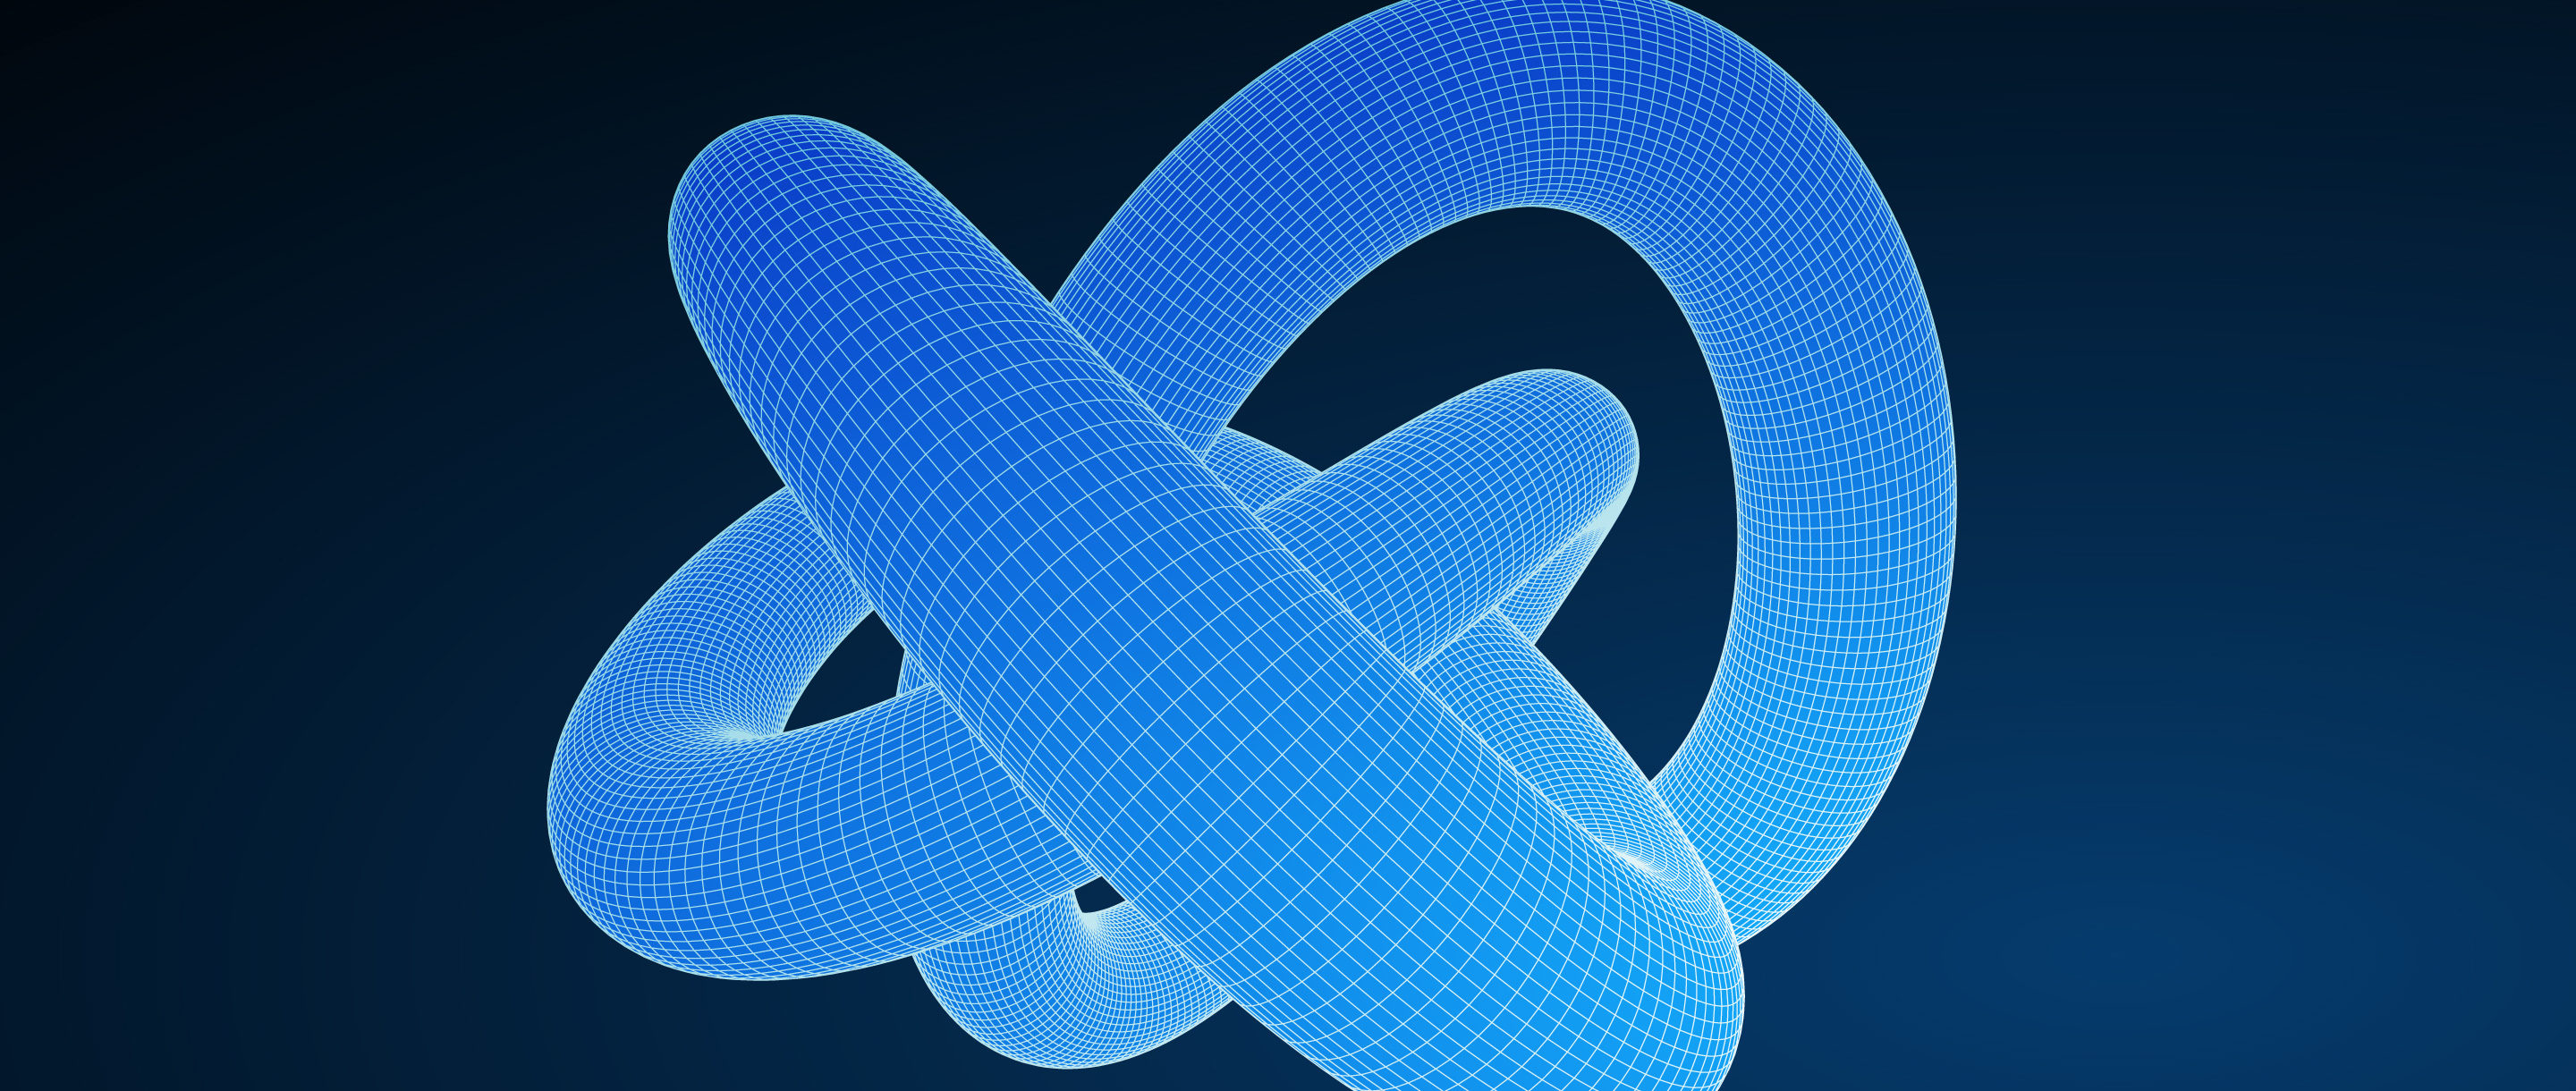 An illustration of a knot that mathematicians might study using tools called invariants.